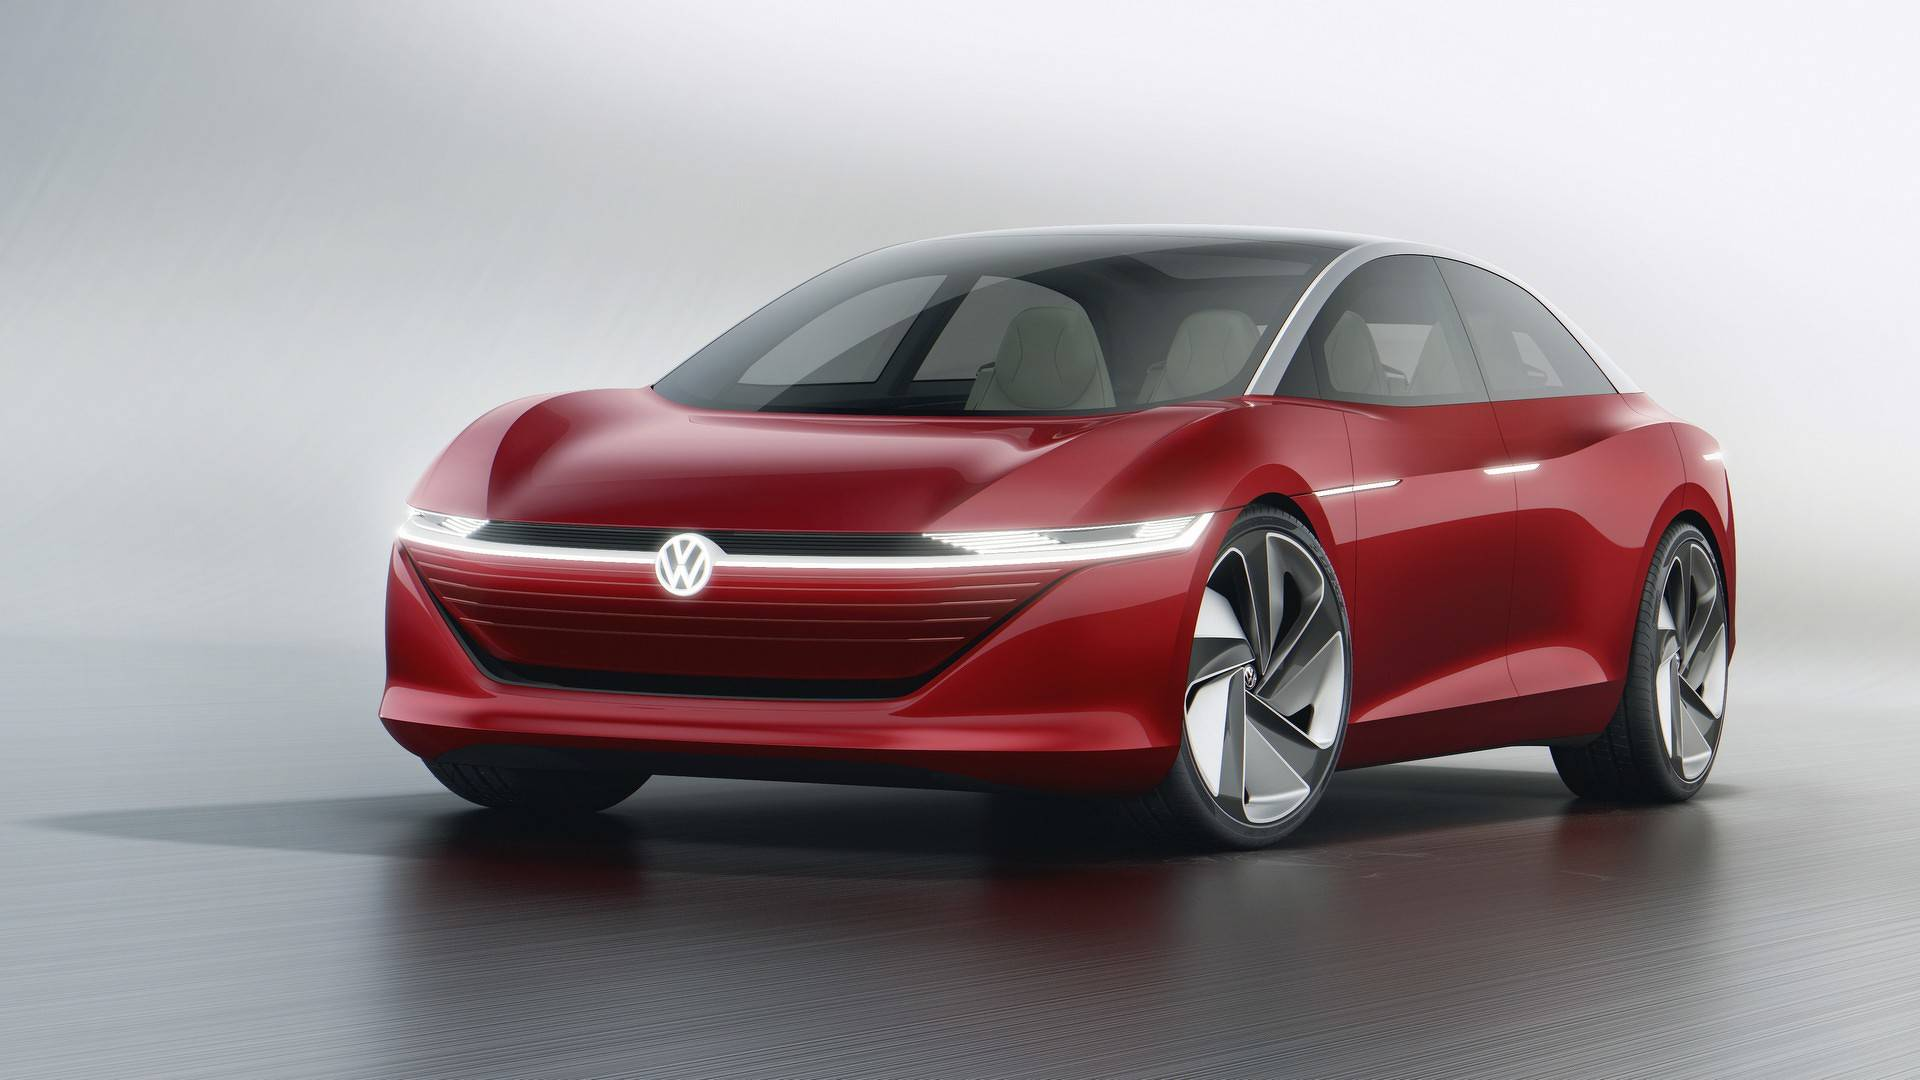 Vwvortex Volkswagen I D Vizzion Concept Unveiled In Geneva A Flagship Electric Sedan That Vw Says Will Hit Production By 2022